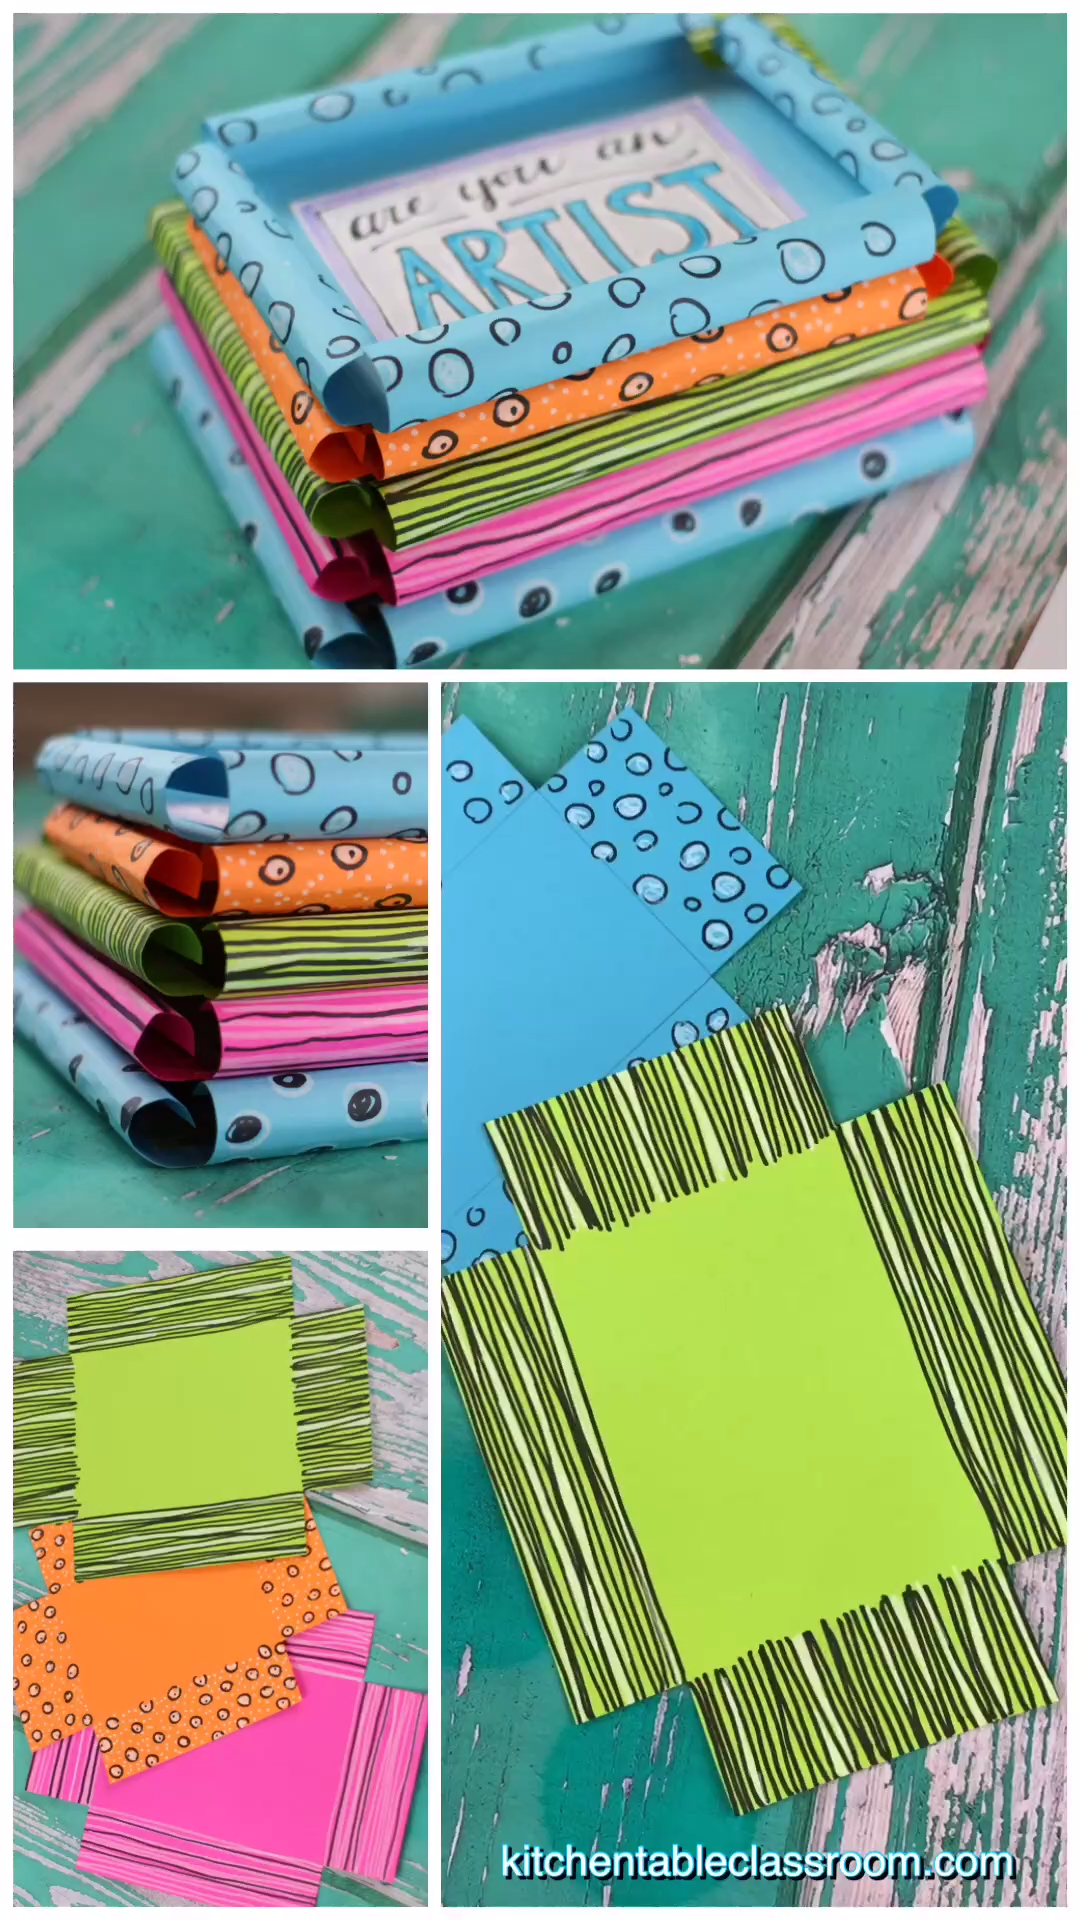 DIY Picture Frame-Super Simple Paper Picture Frames -   18 diy projects For The Home picture frames ideas